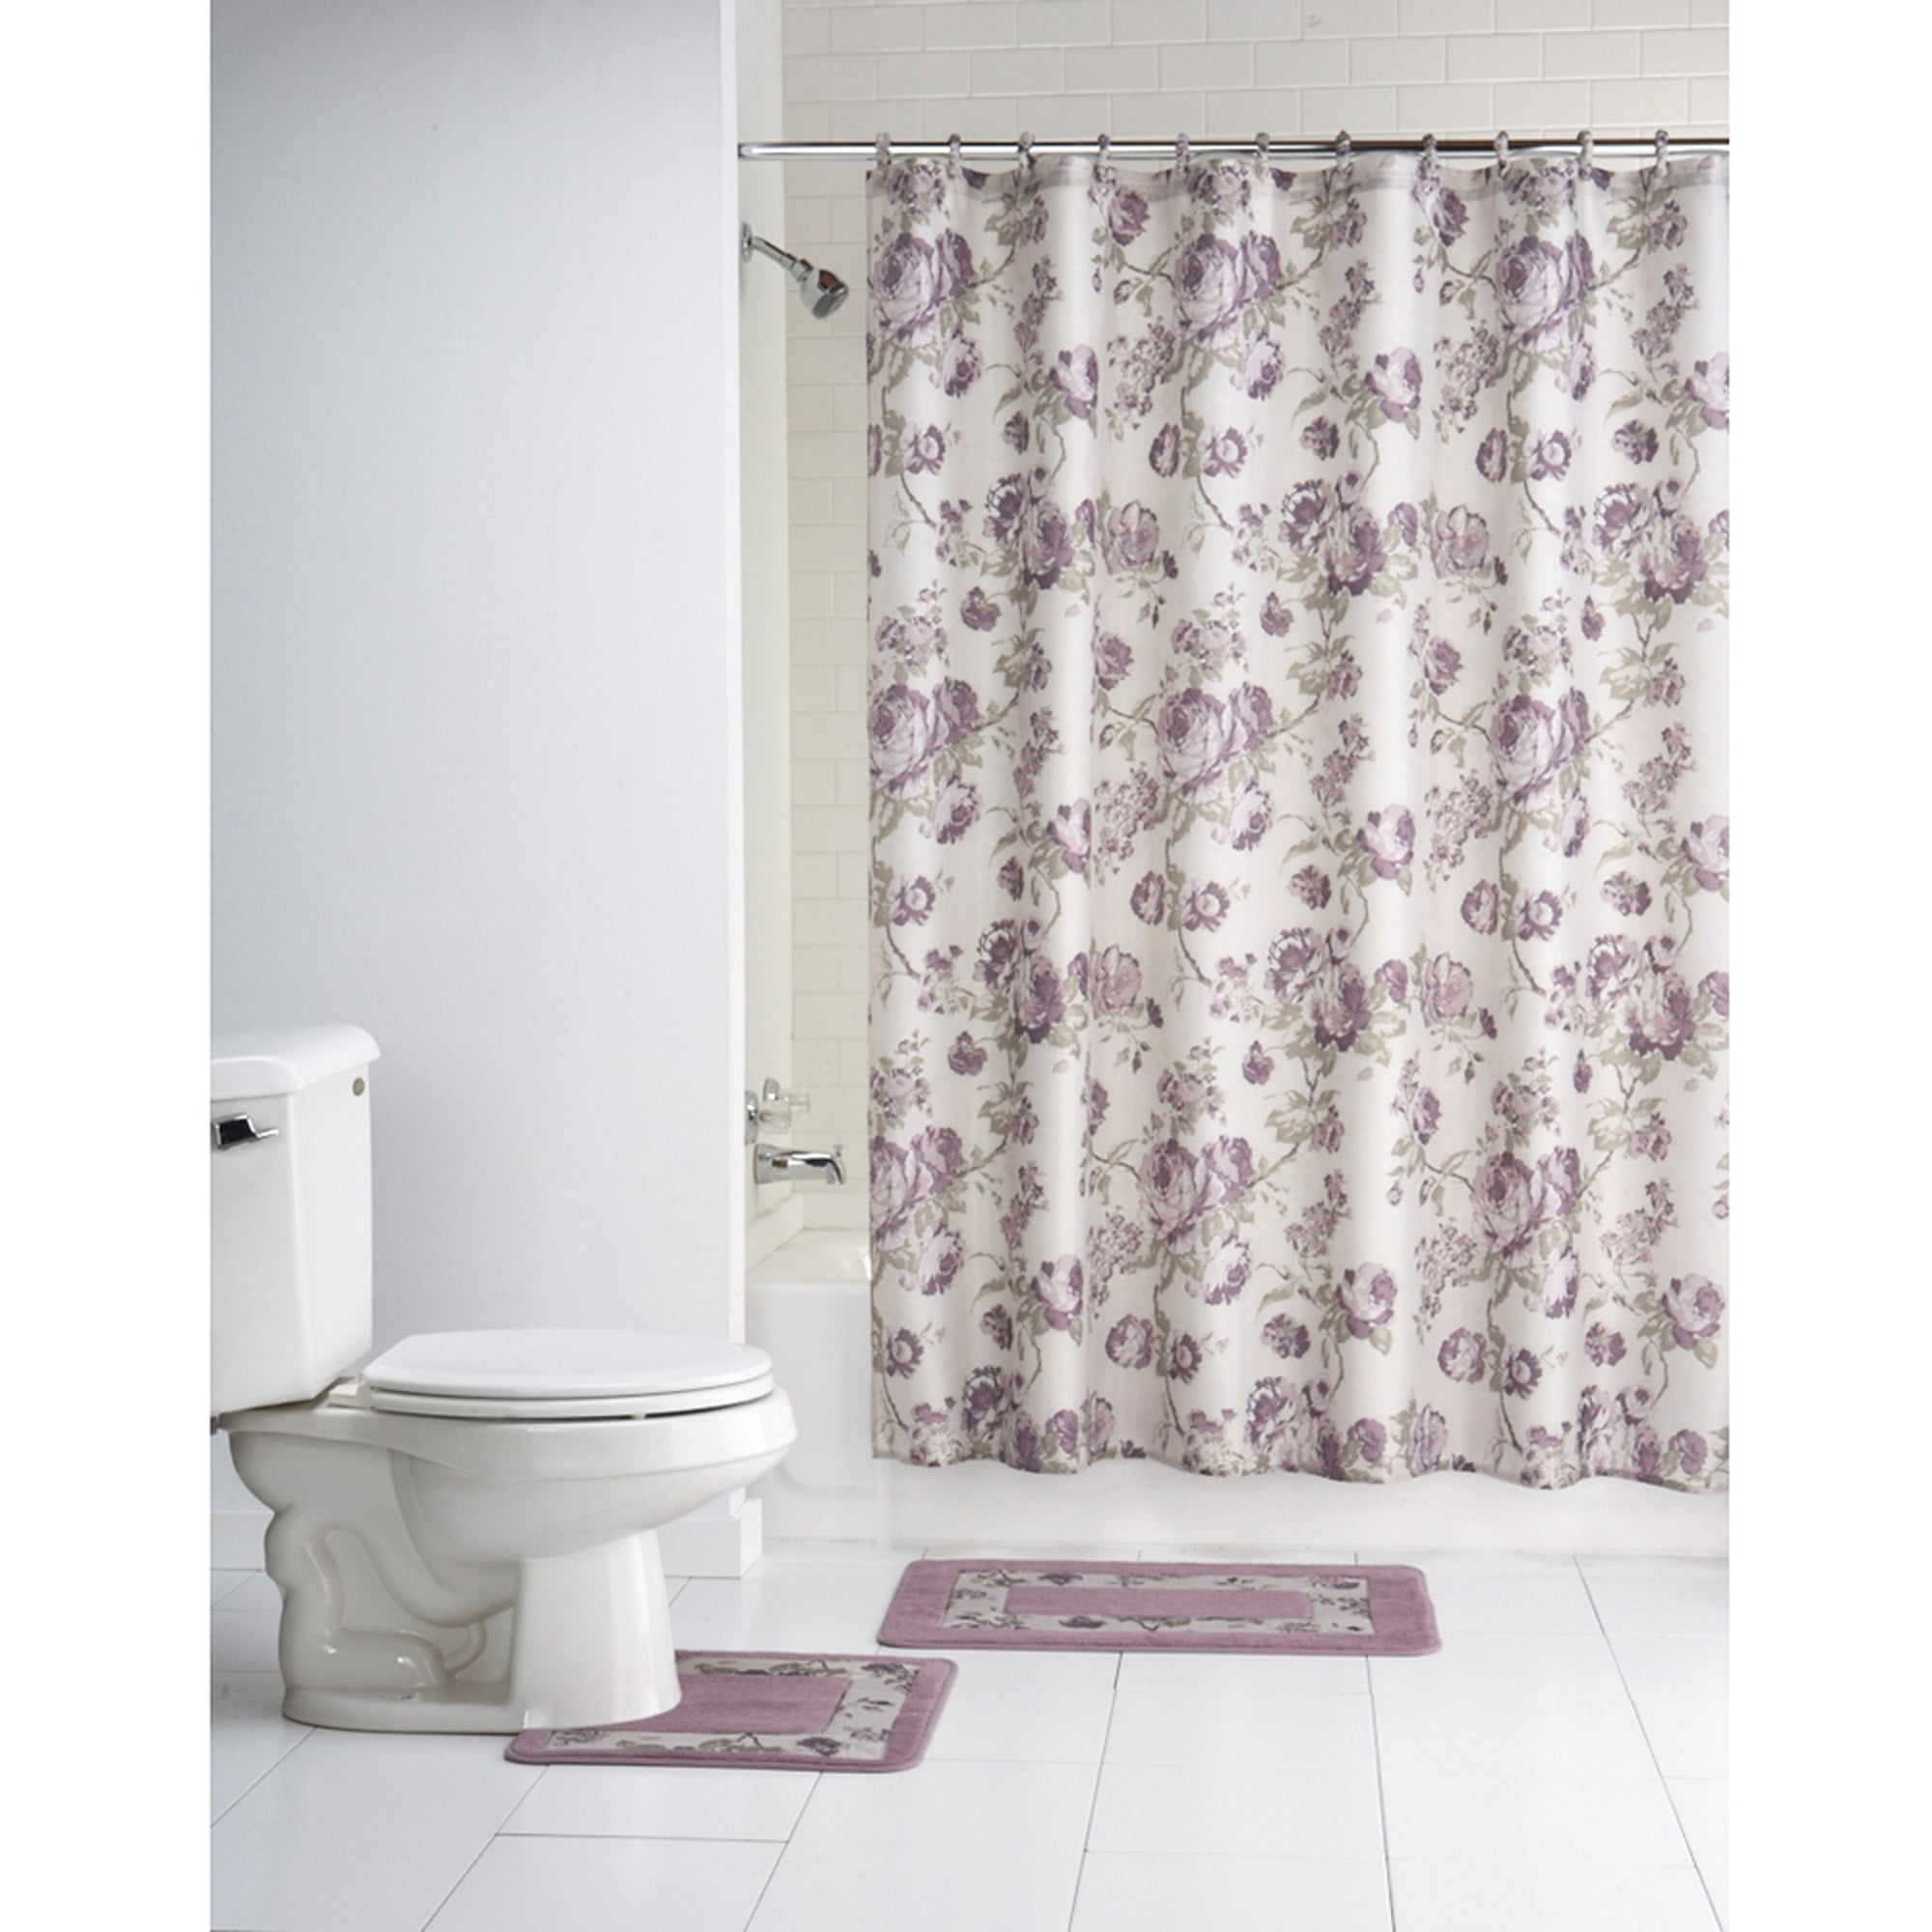 Bathroom Signs Walmart mainstays multi-color floral chelsea 15-piece polyester bath in a